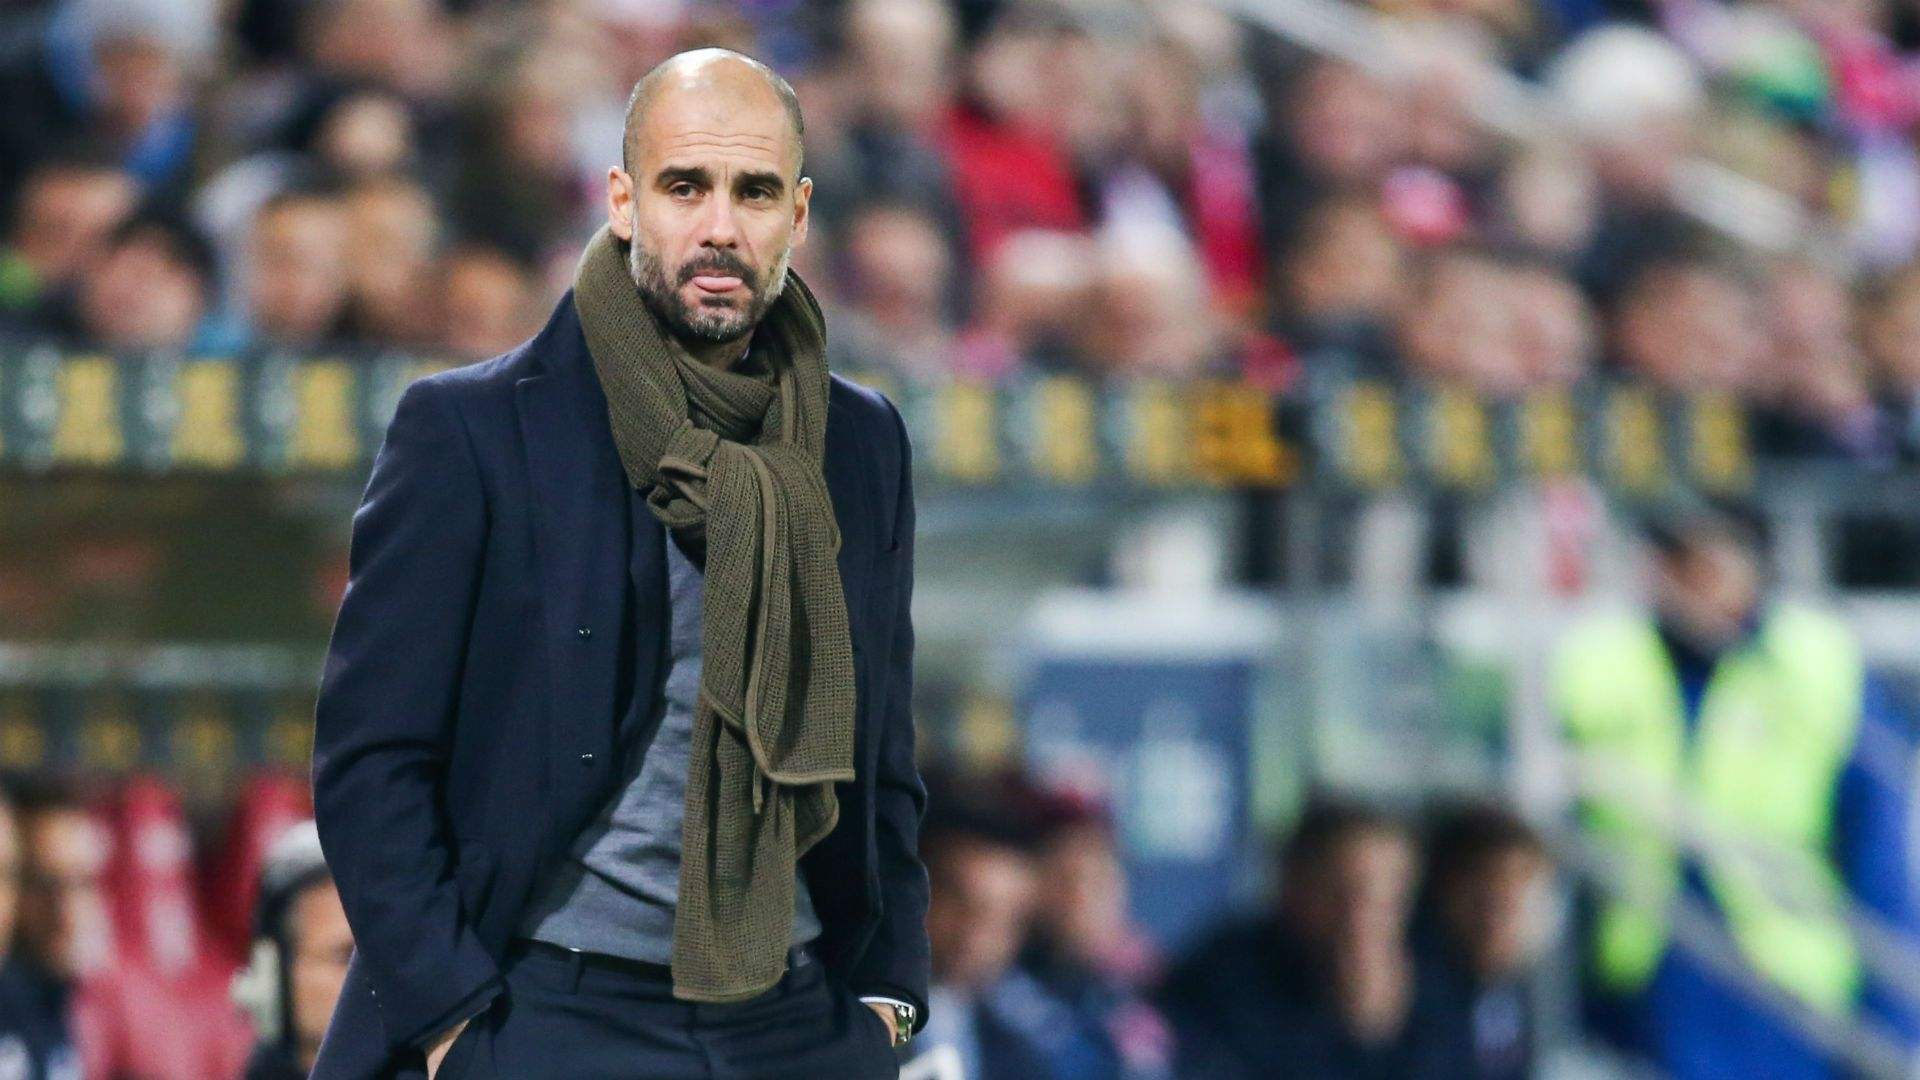 Guardiola hits out on the individual awards system in England after Henderson named FWA  Player of the year - THE SPORTS ROOM